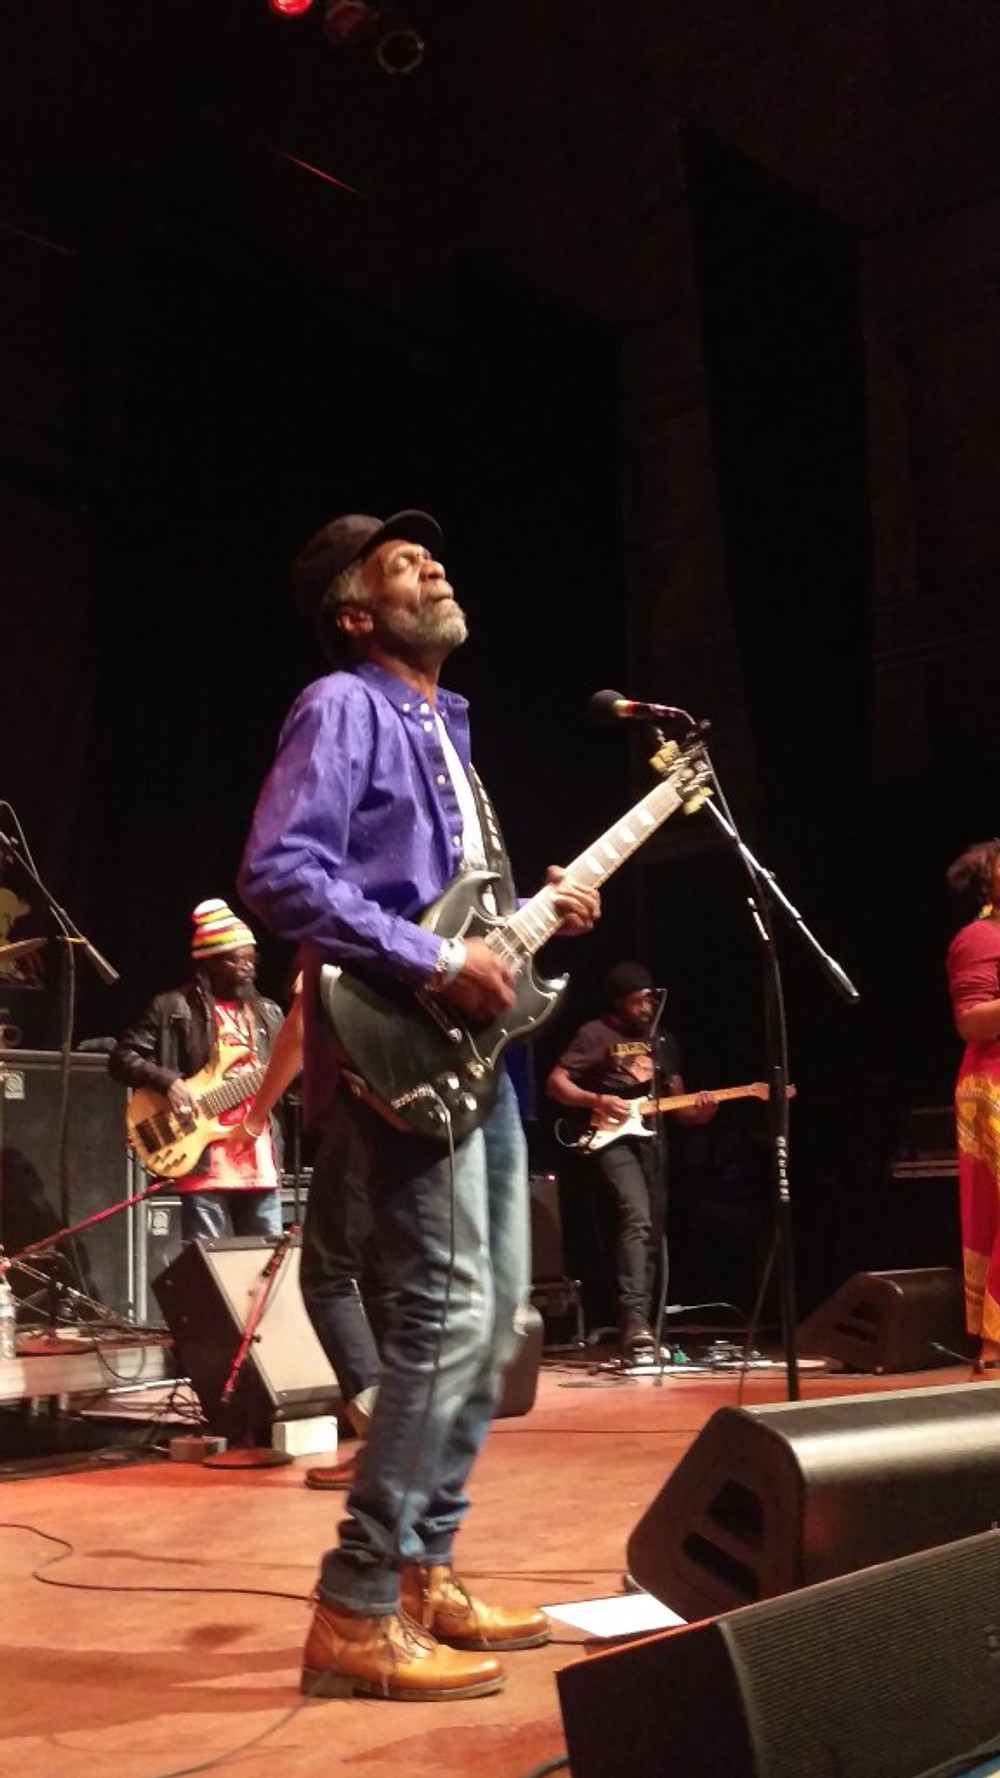 Donald Kinsey playing the guitar at The Wailers show.